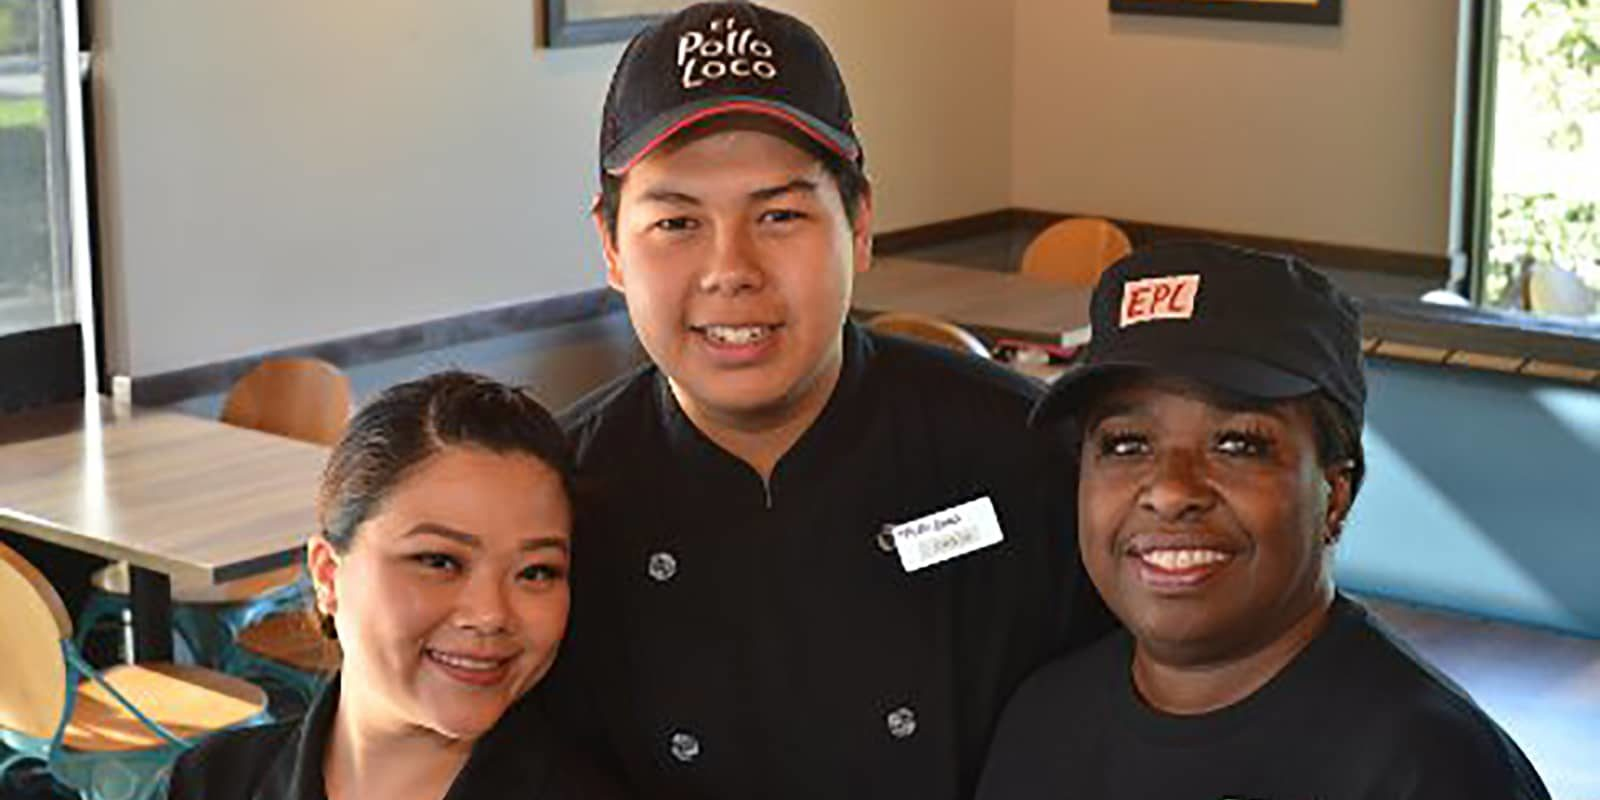 El Pollo Loco 3 Crew Members